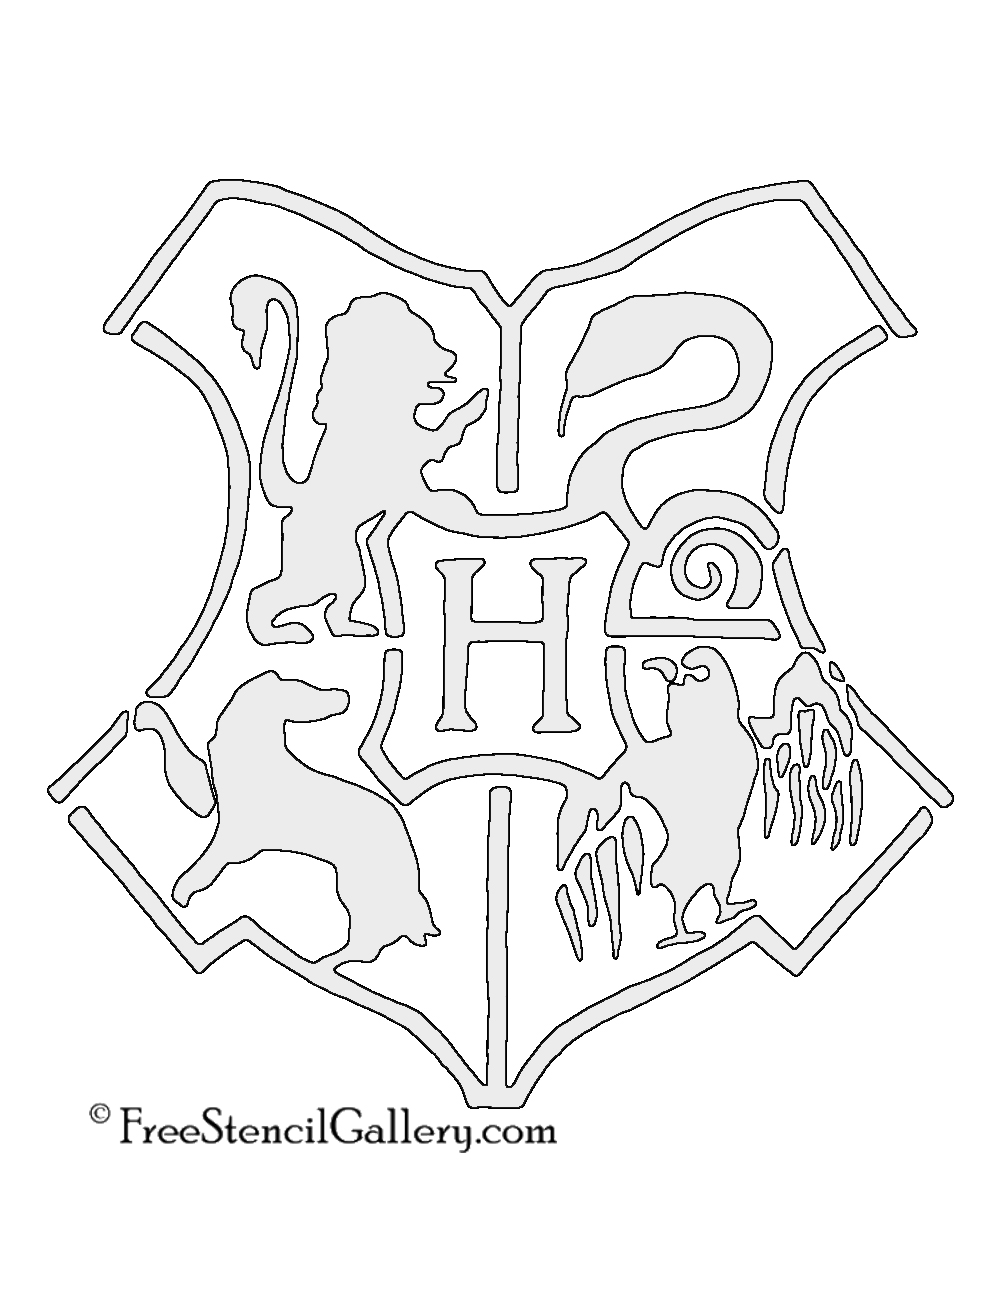 image relating to Harry Potter Stencils Printable named Hogwarts Crest Stencil Cost-free Stencil Gallery